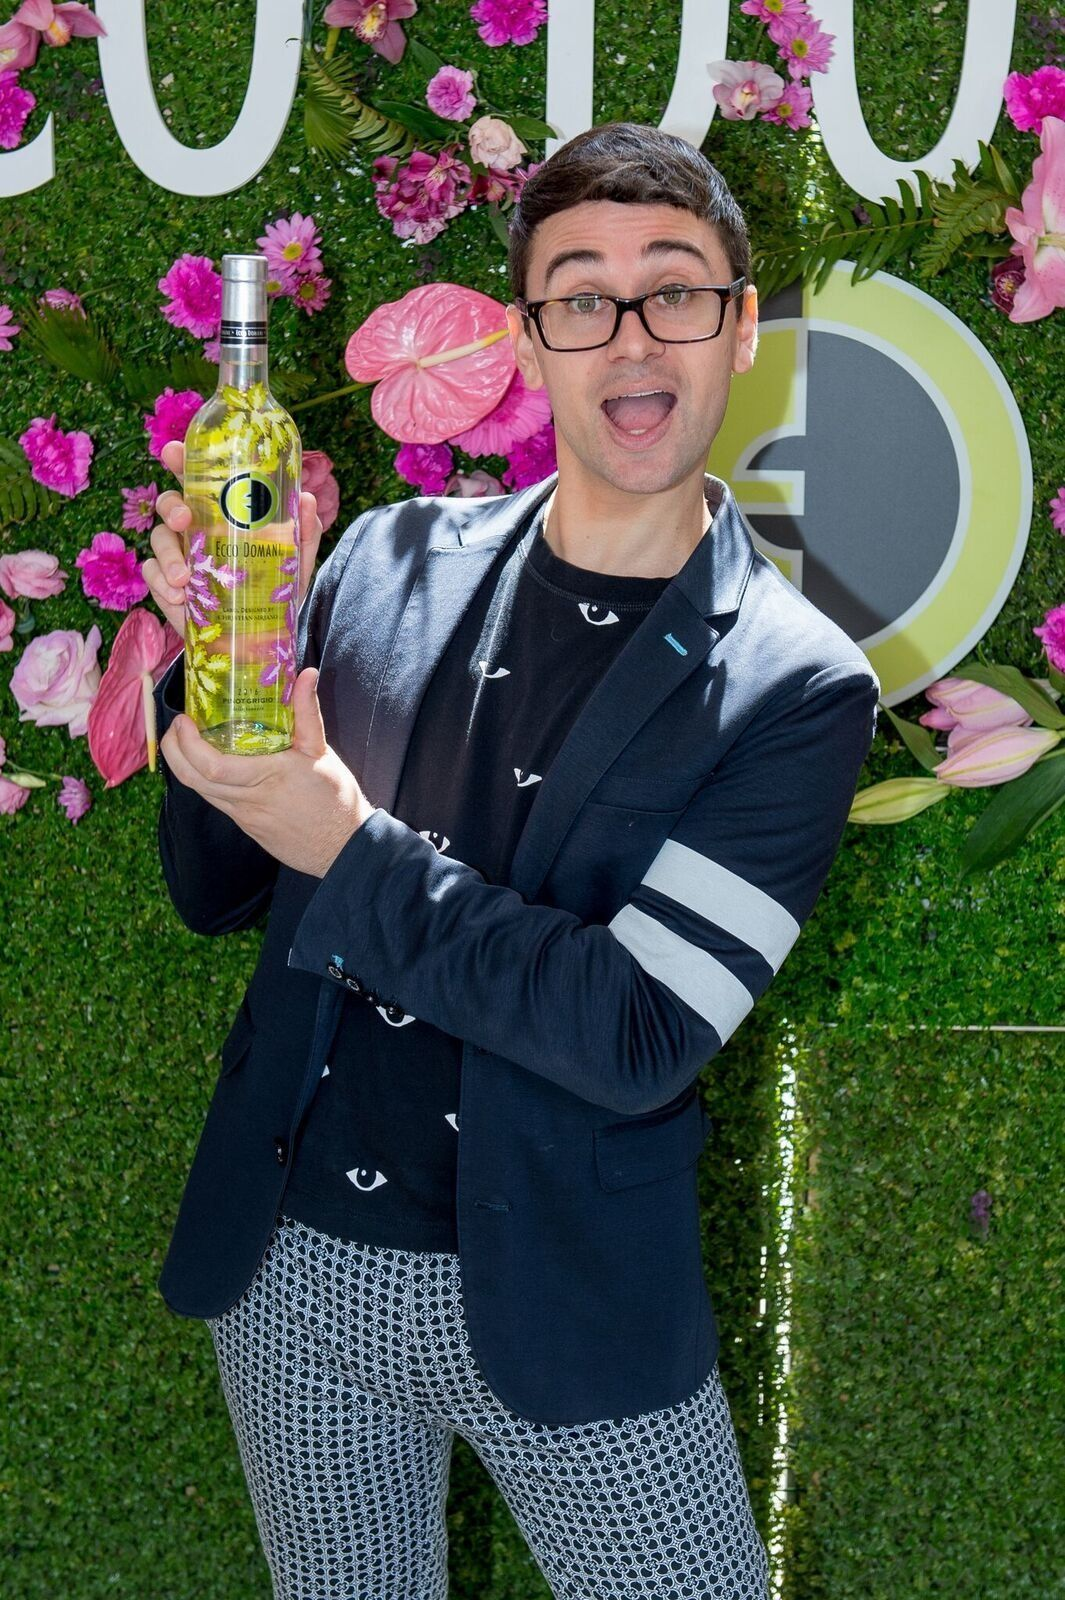 Designer Christian Siriano said his newEcco Domani Pinot Grigio design was inspired by Palm Springs in the 1960s.